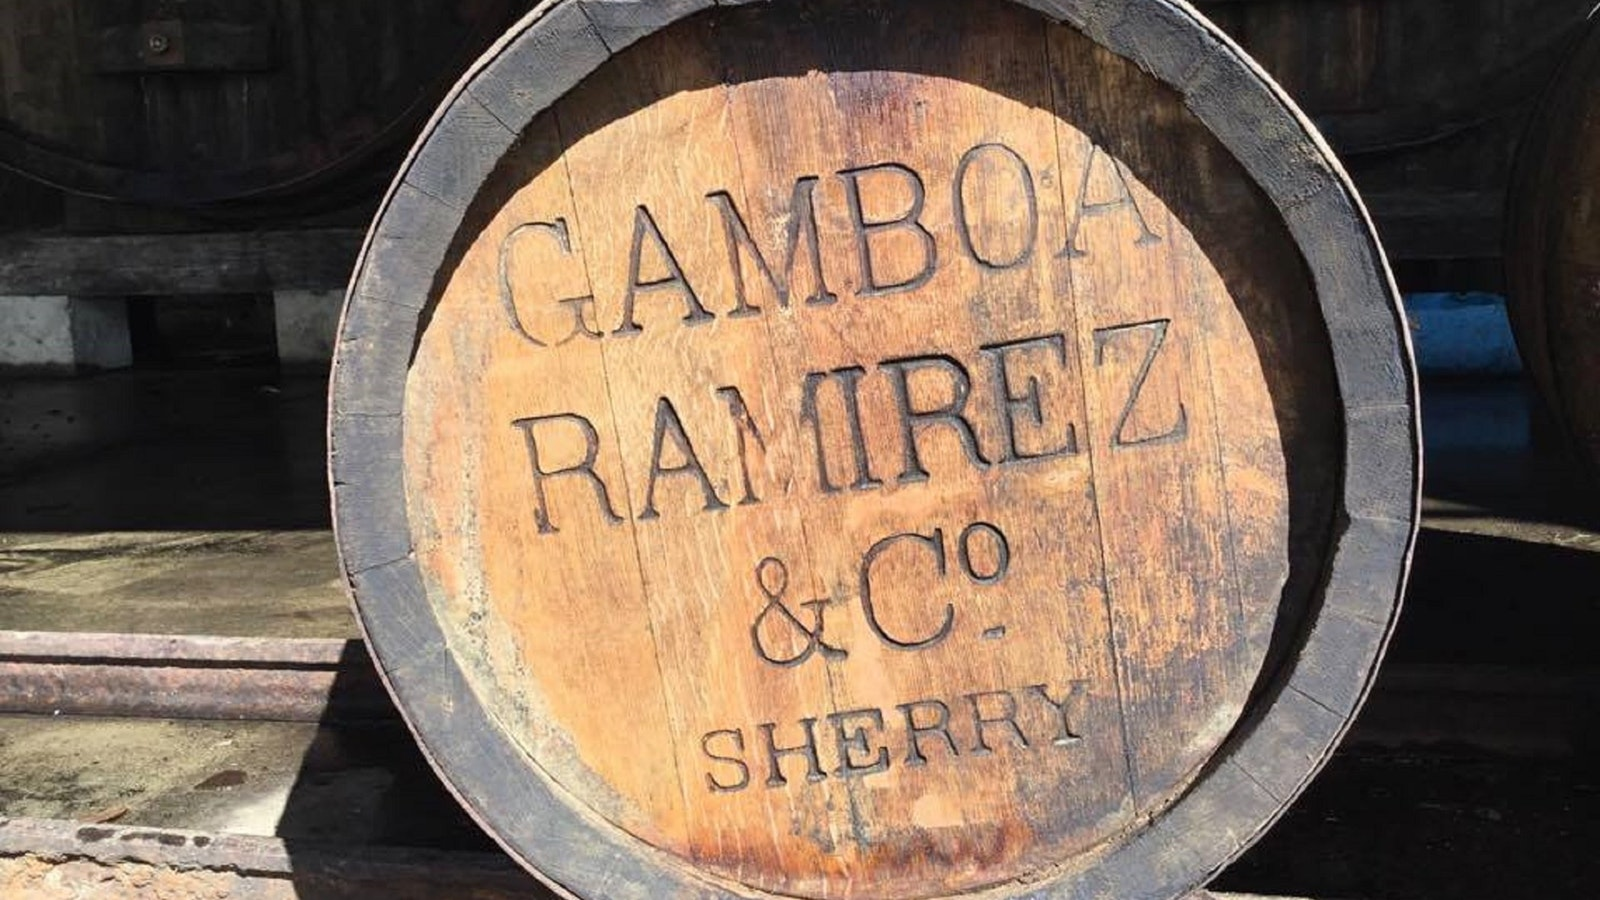 Gamboa Ramirez & Co Sherry Barrel